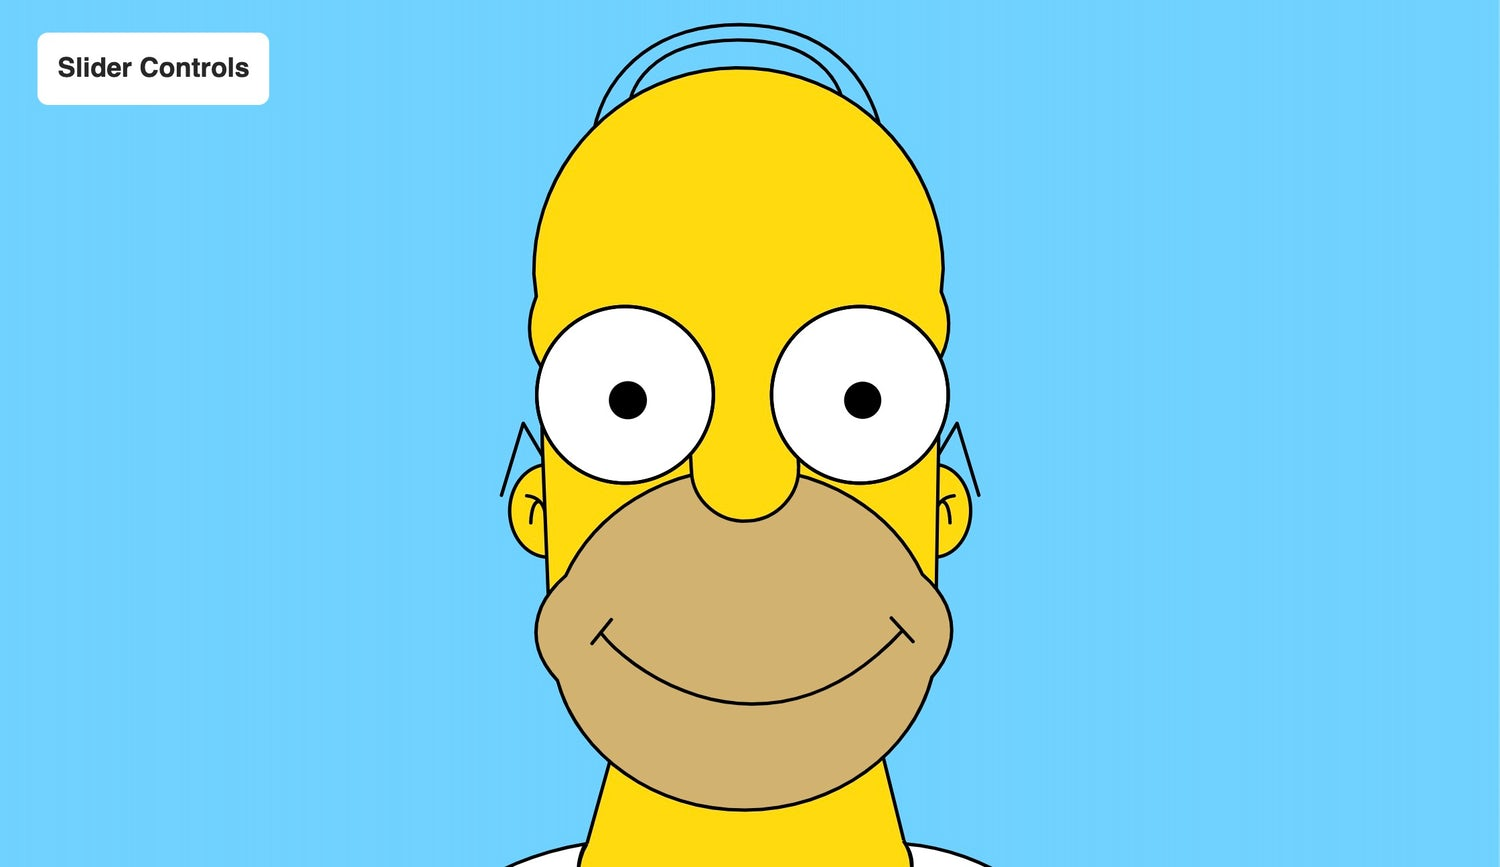 Homer Simpson on a blue background